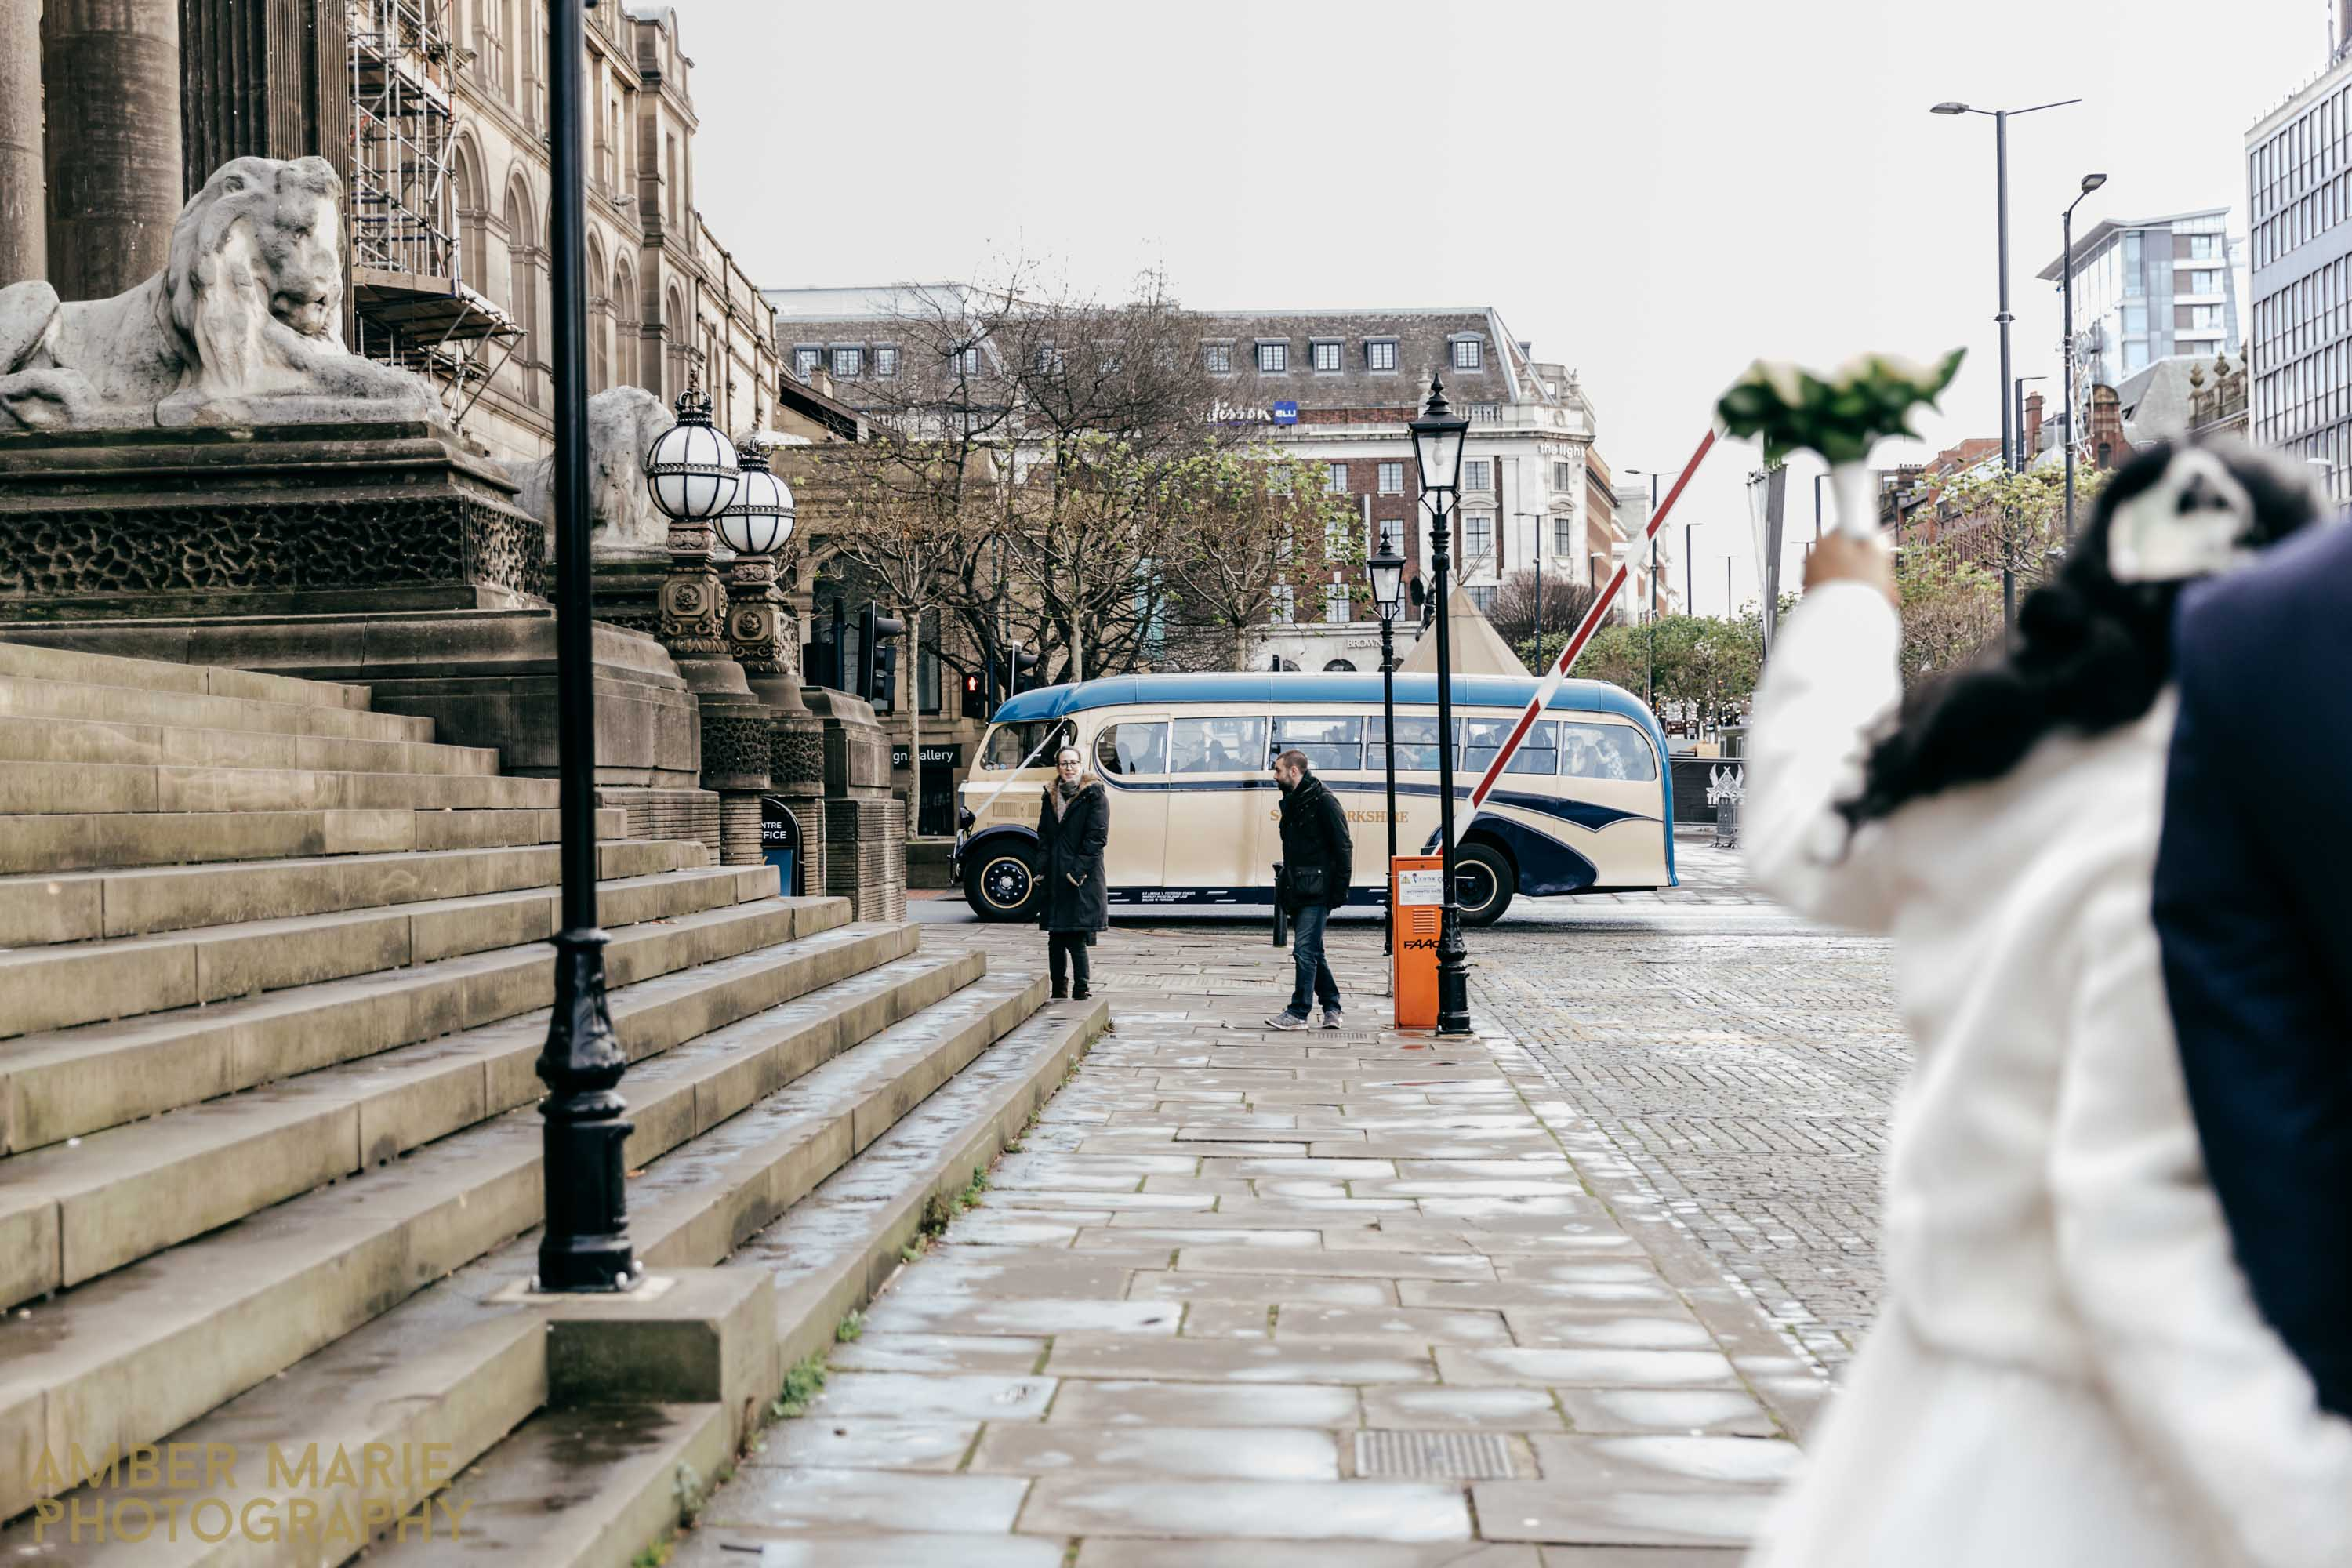 Leeds town hall wedding creative wedding photographers yorkshire